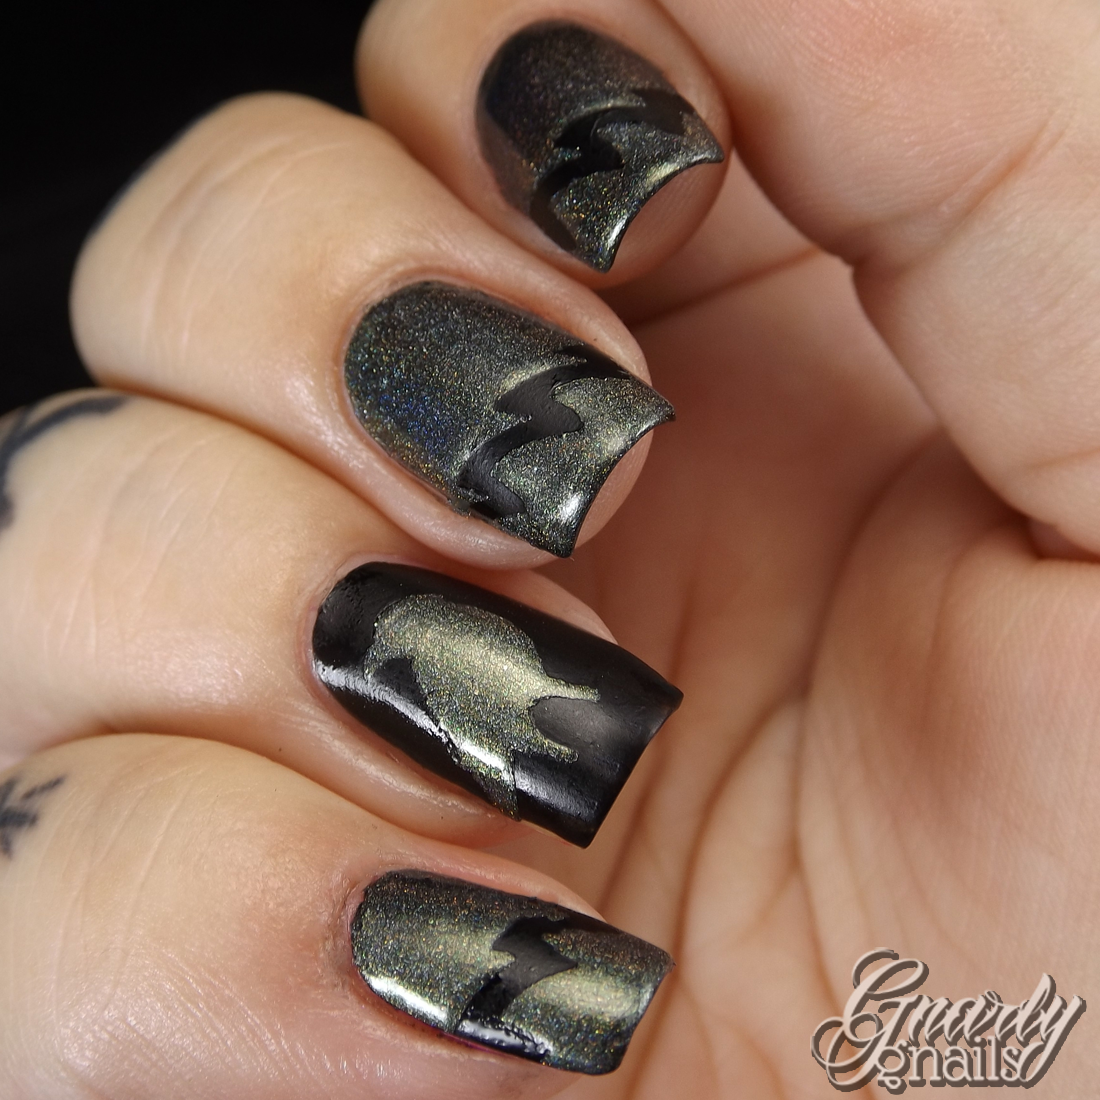 Pretty Jelly & Sticky Nails Maleficent Duo Review - Gnarly Gnails